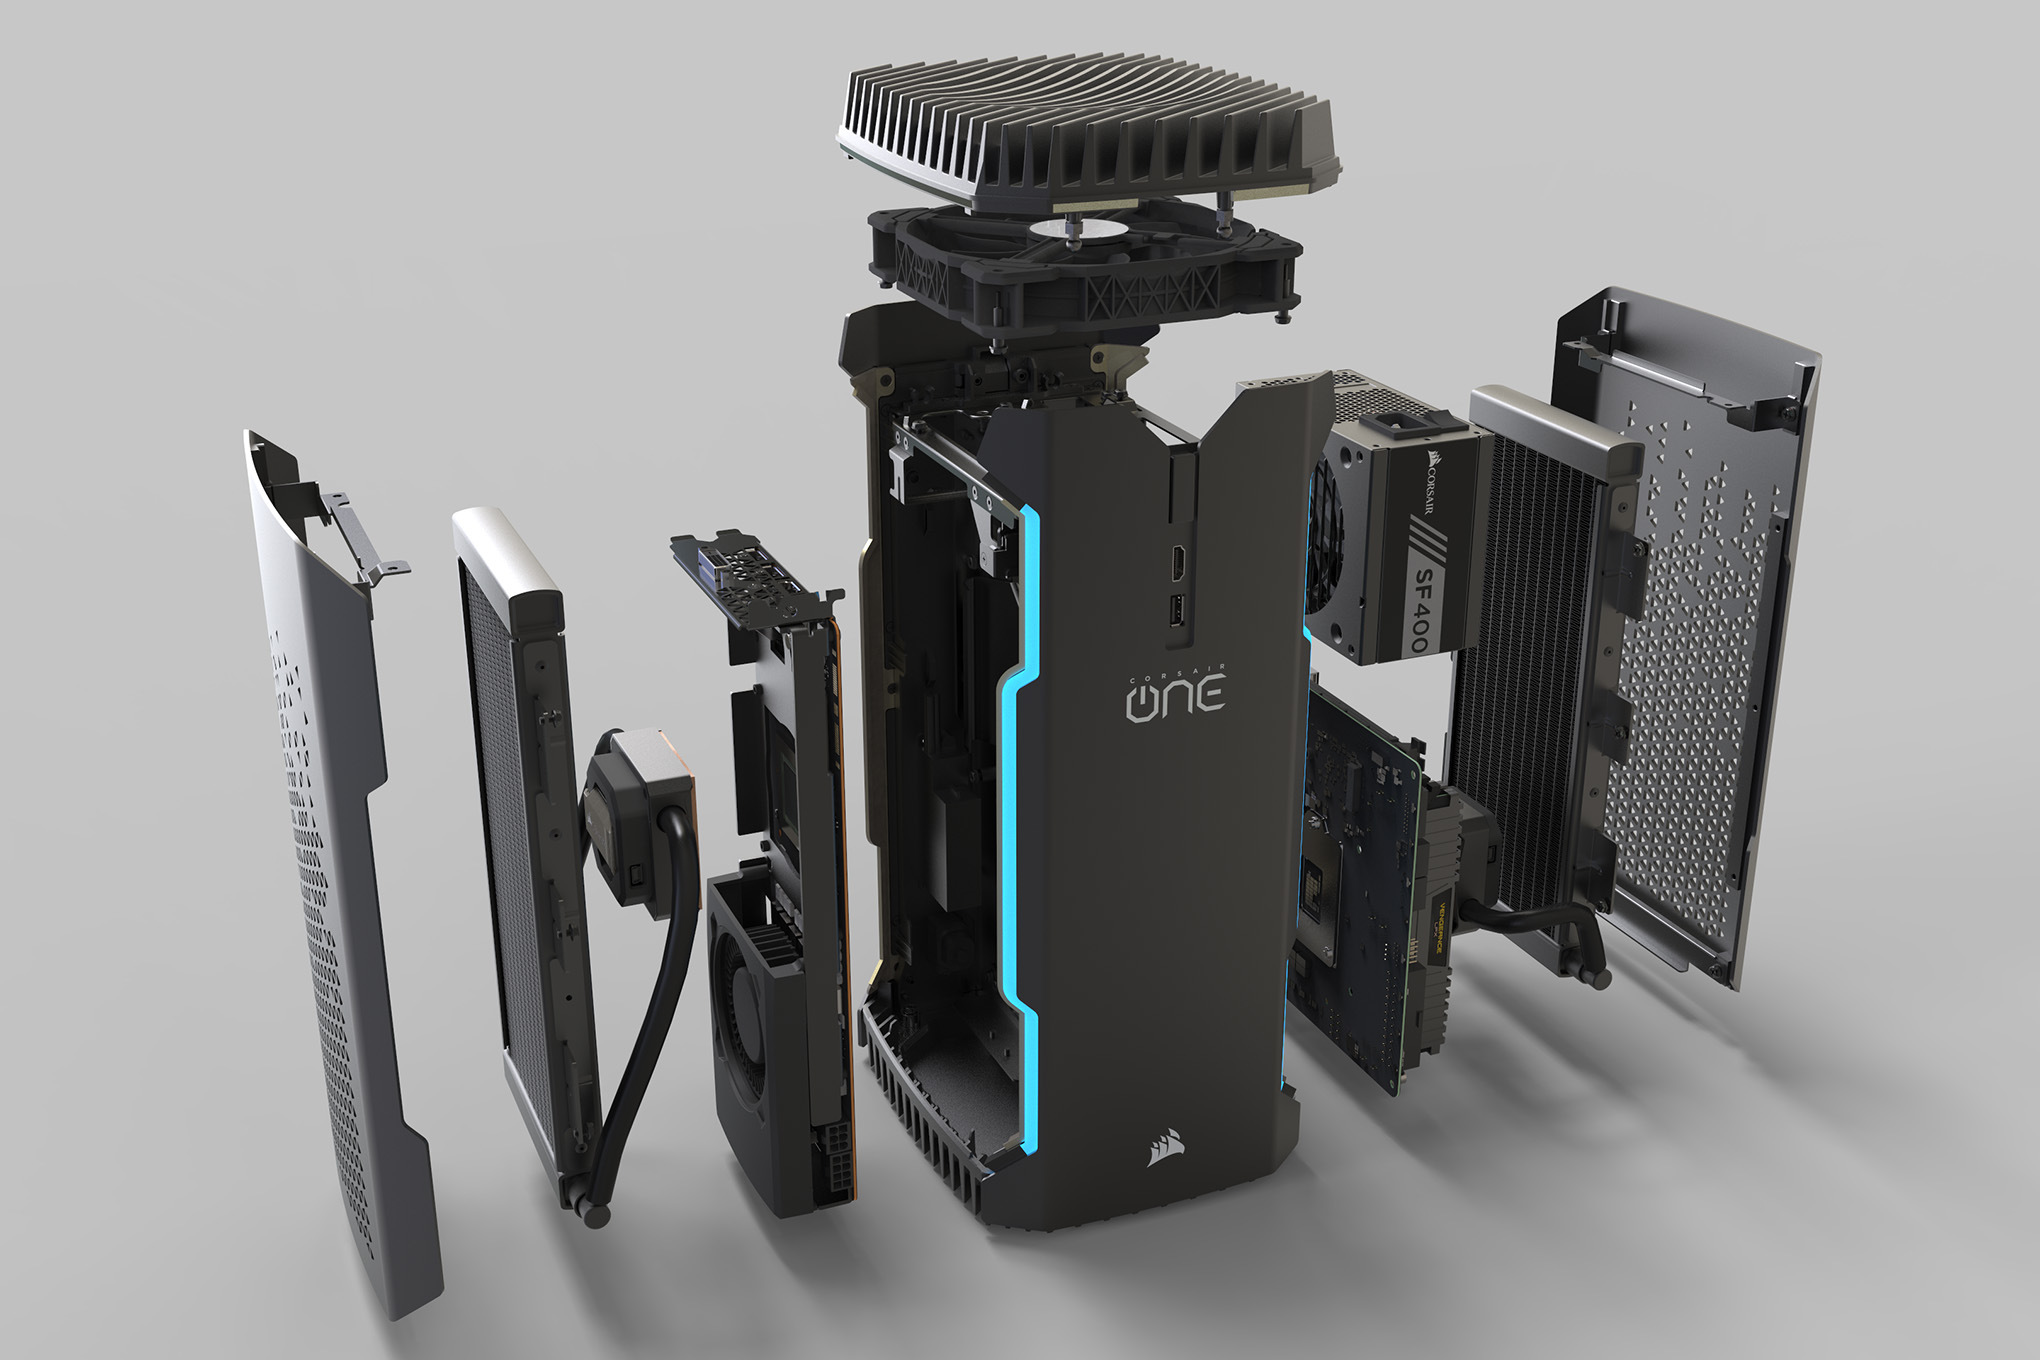 Solid Black Wallpaper Corsair One Review A Console Like Pc In The Age Of Pc